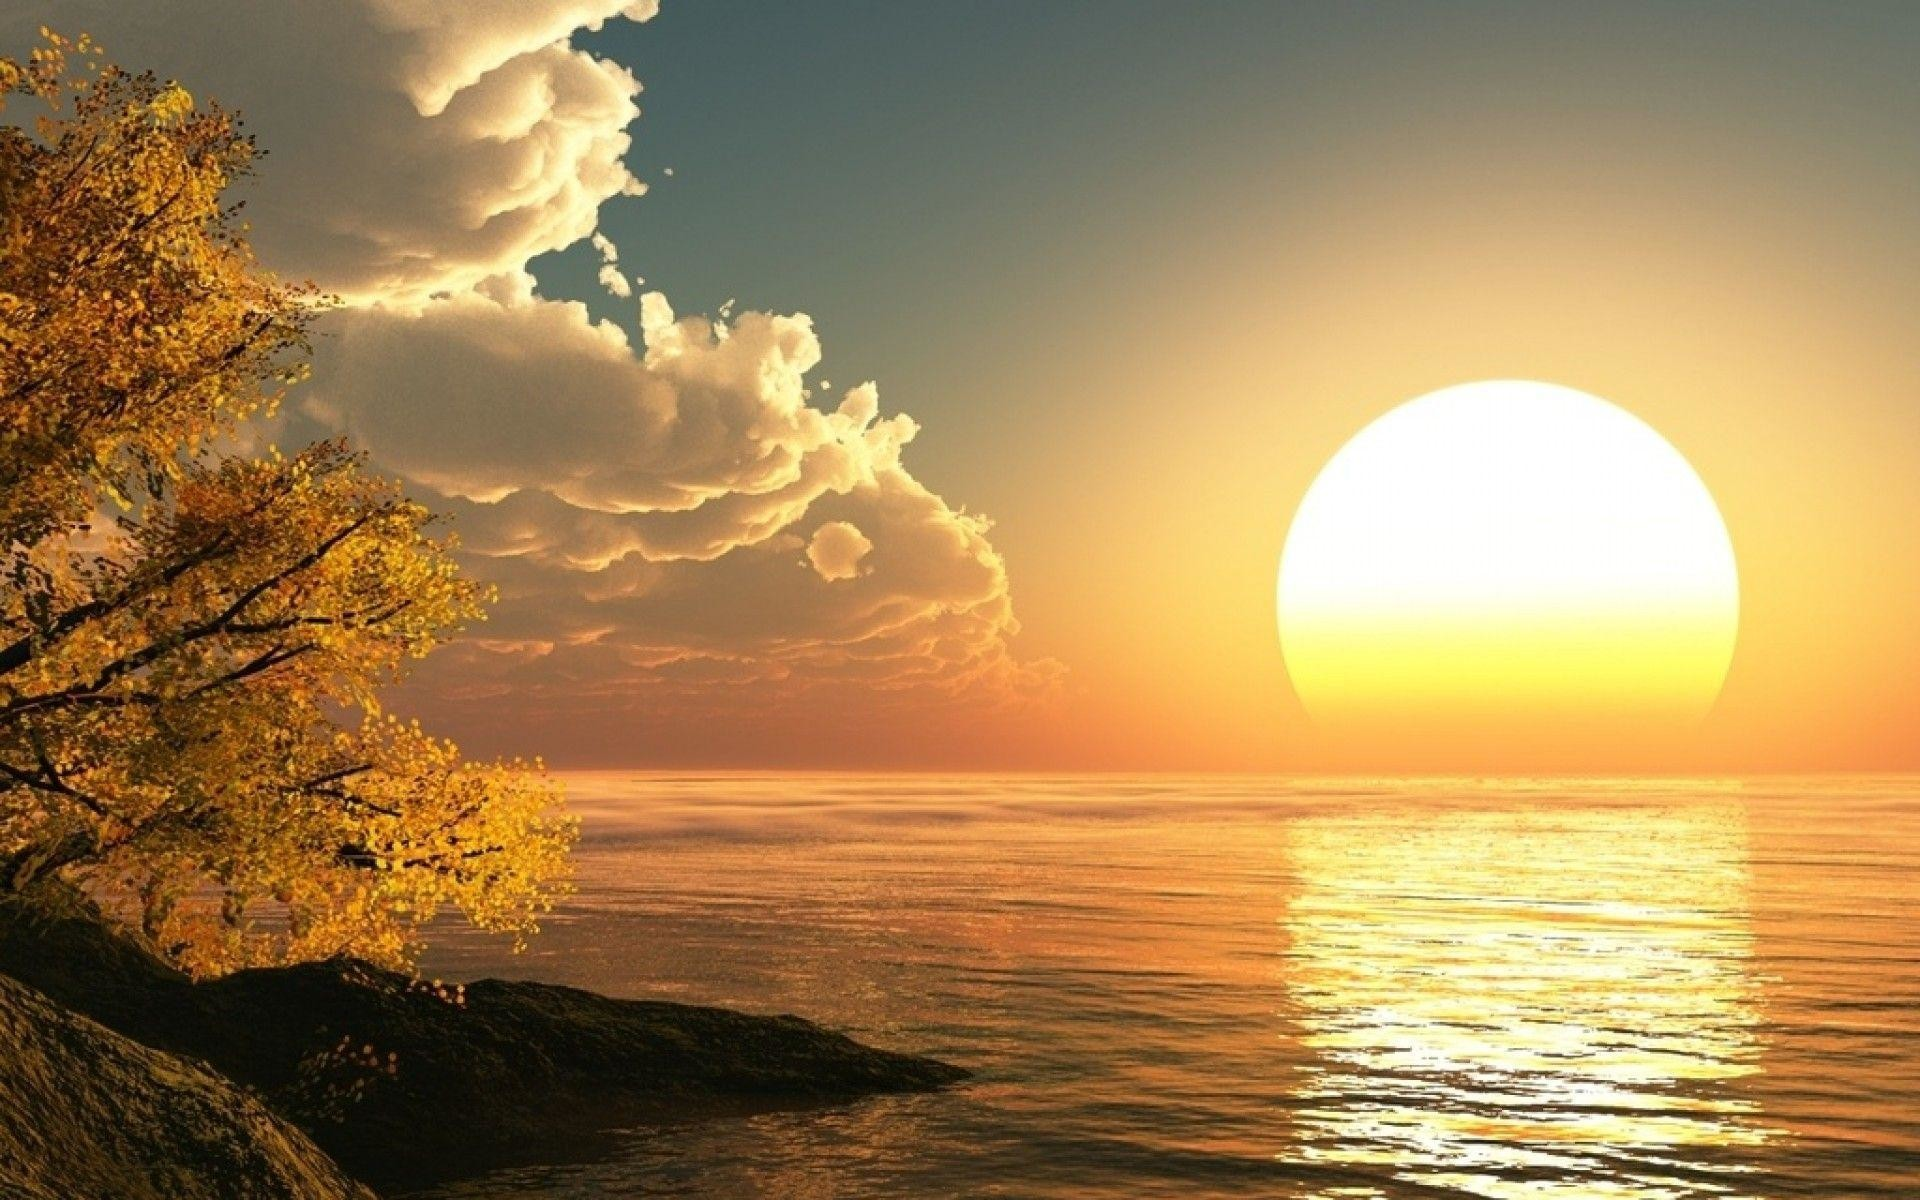 Sun rise wallpapers 78 background pictures 1920x1200 rising sun wallpapers full hd wallpaper search altavistaventures Gallery